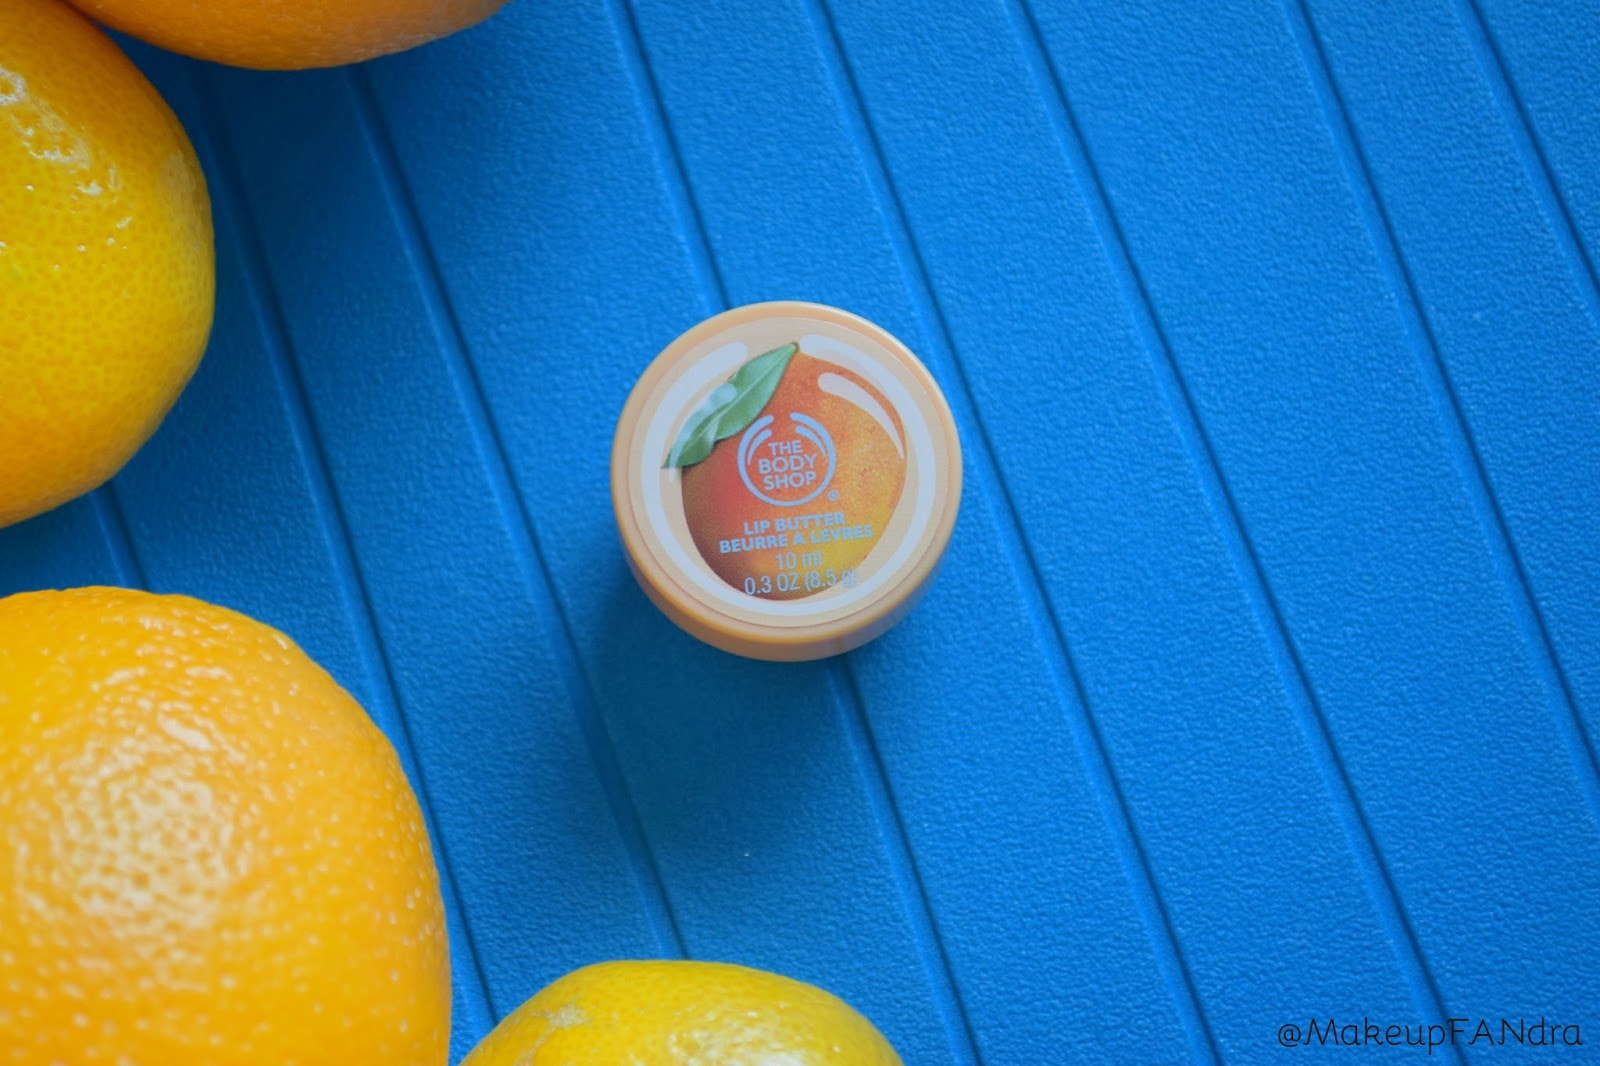 The body shop lip butter mango 1